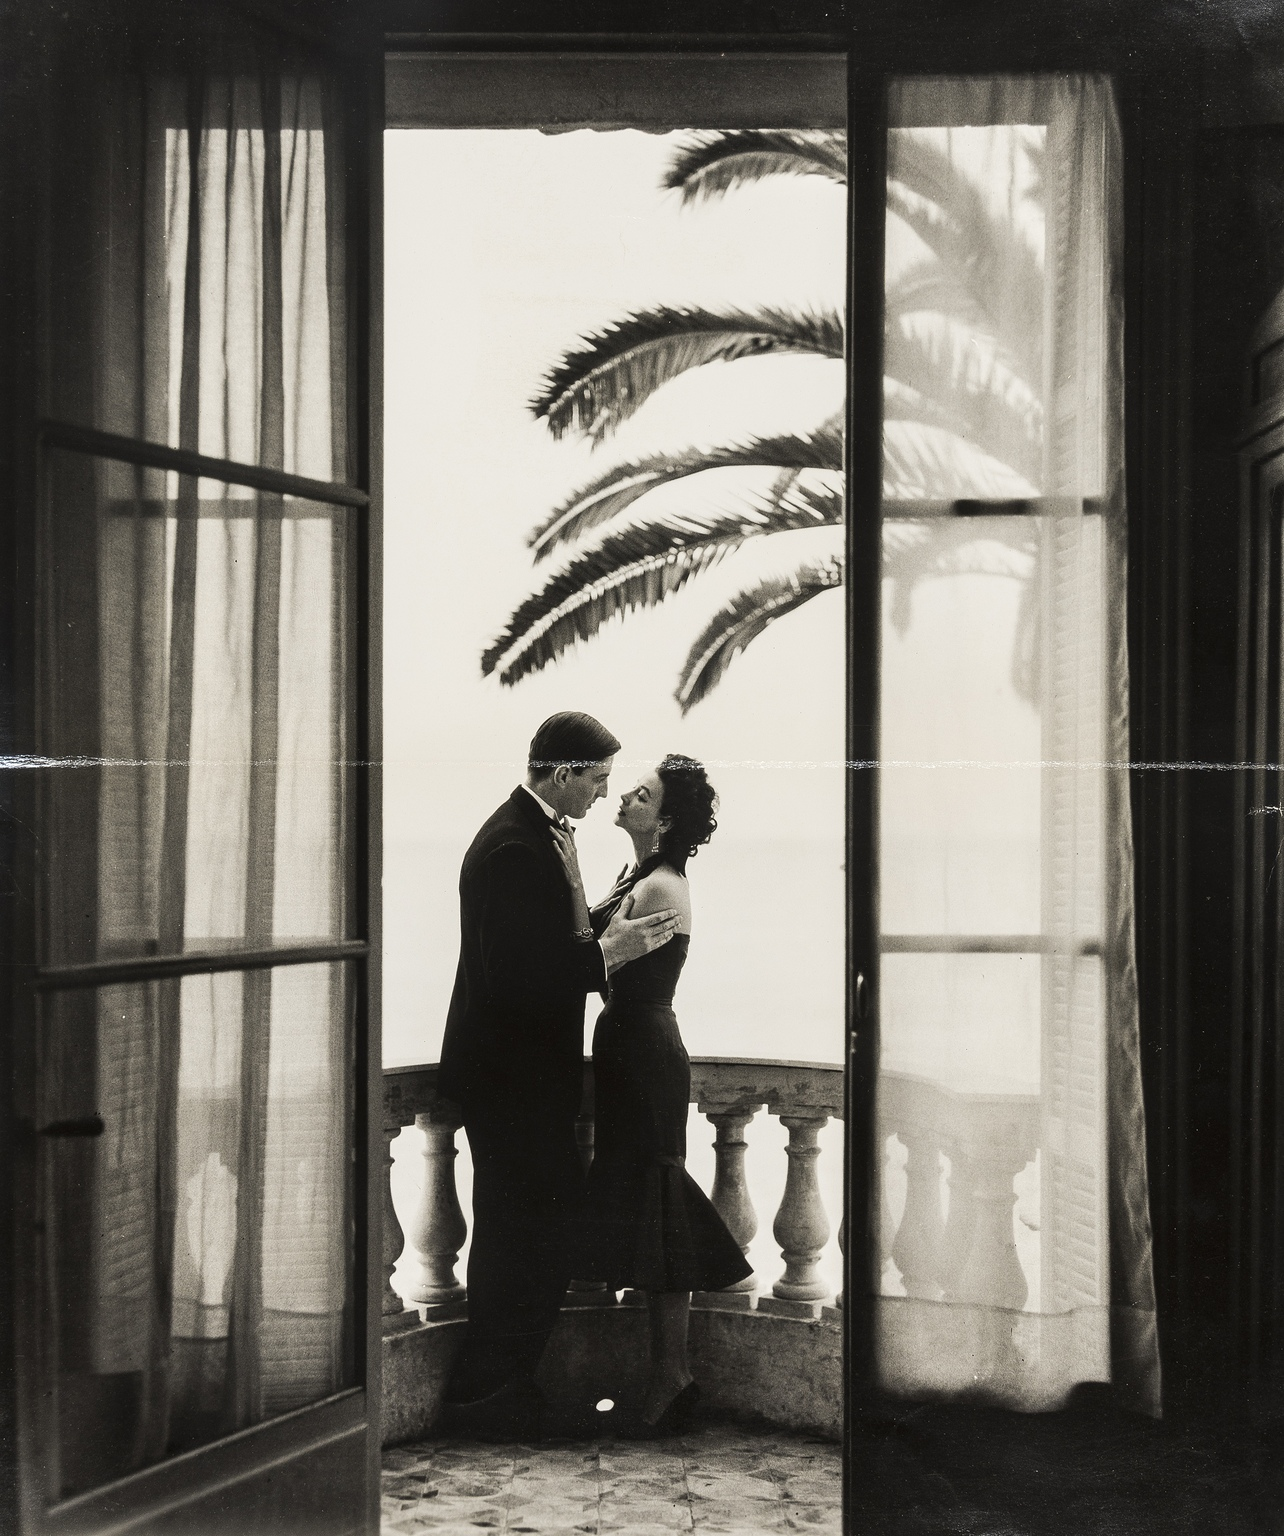 Vente Forever in Fashion: Important Photographs from the Norman Parkinson Archive NO RESERVES chez Forum Auctions : 60 lots